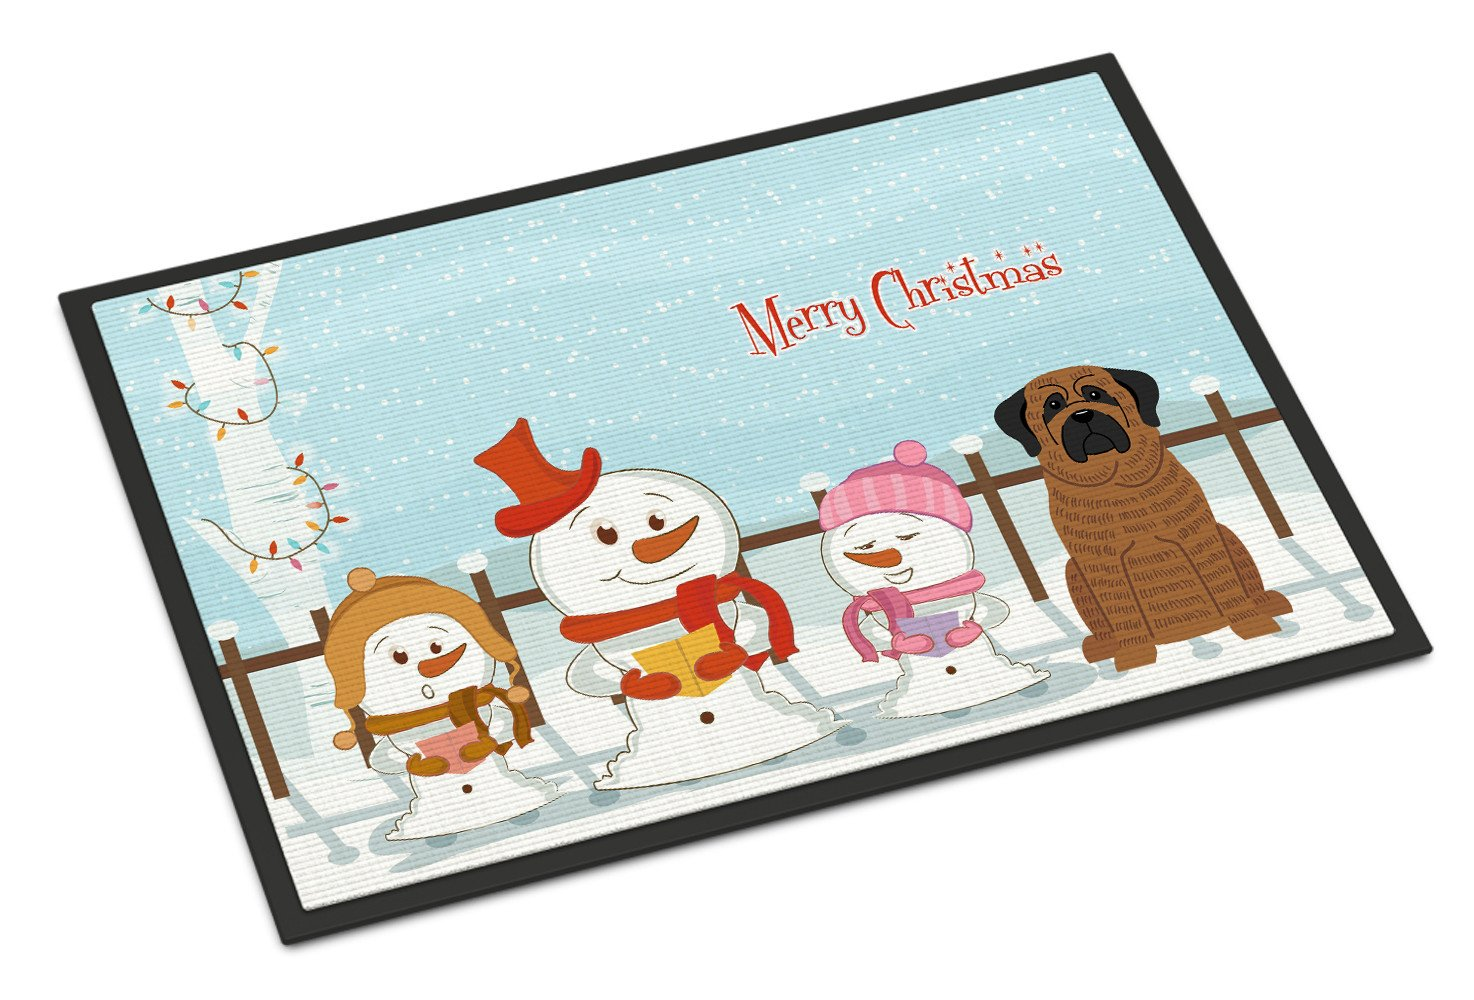 Merry Christmas Carolers Mastiff Brindle Indoor or Outdoor Mat 18x27 BB2346MAT by Caroline's Treasures